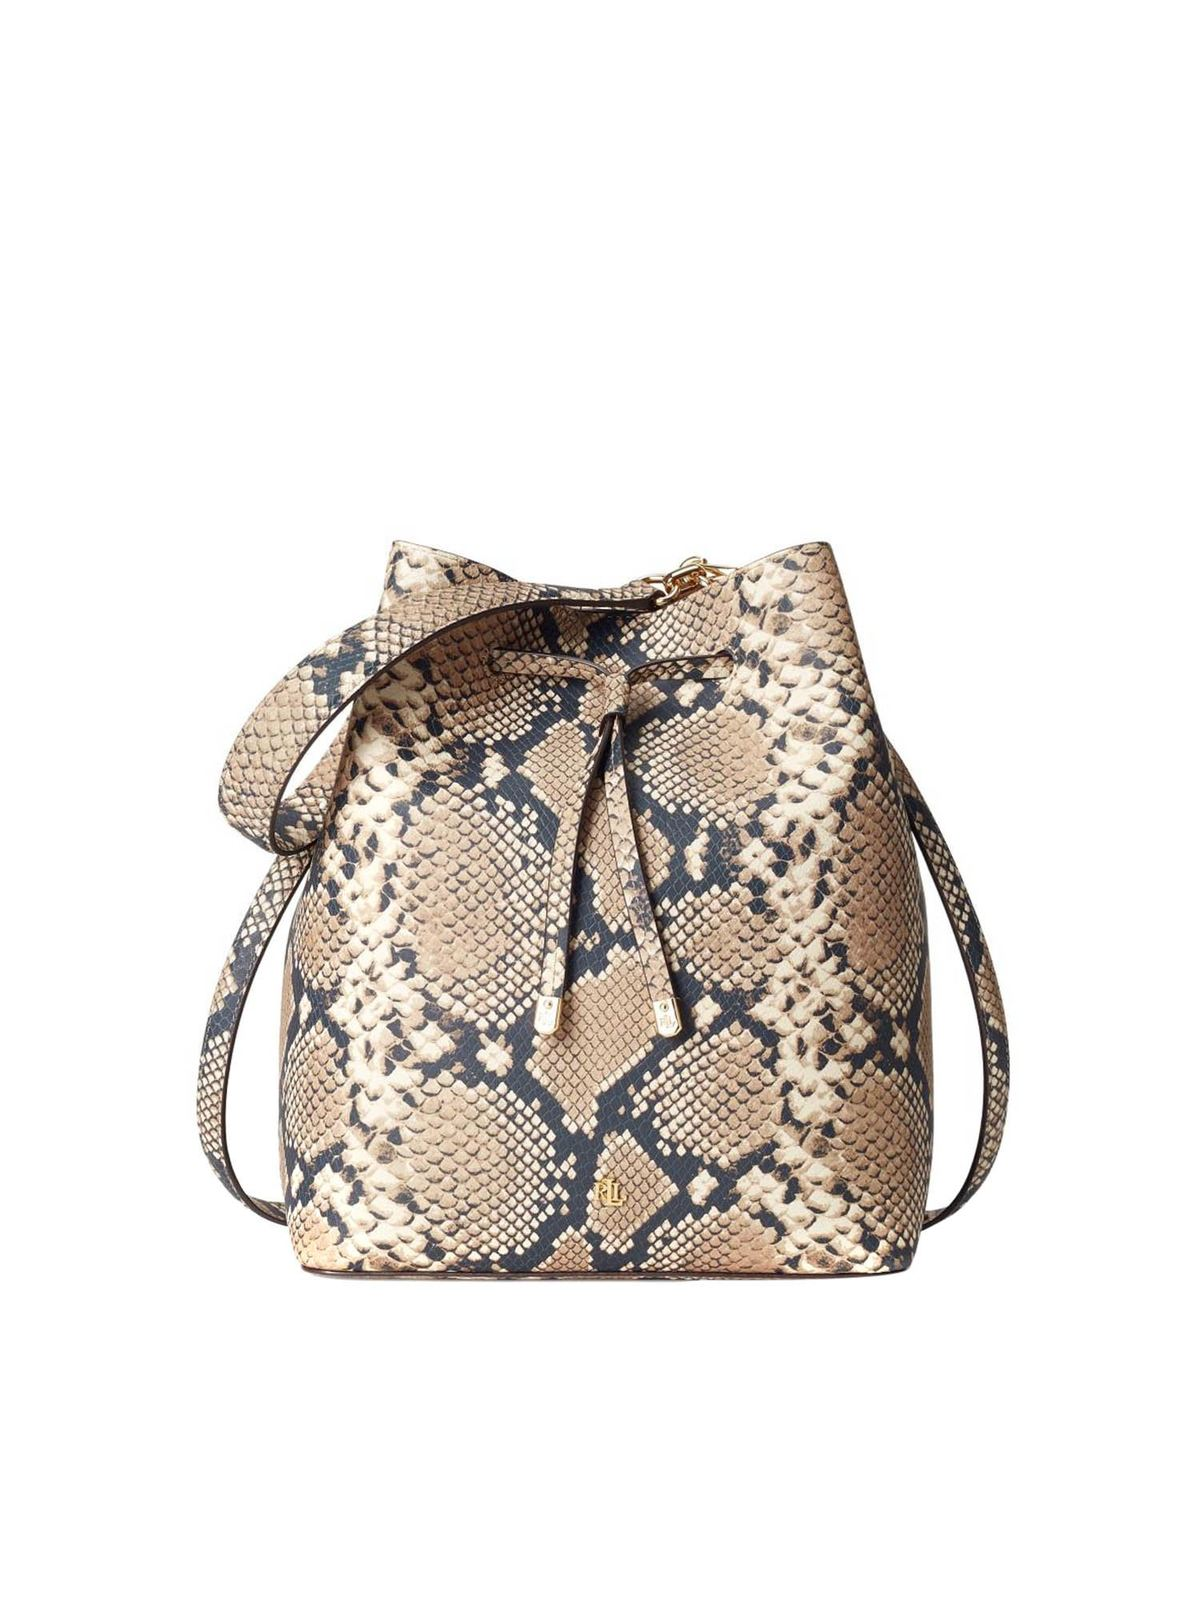 Lauren Ralph Lauren REPTILE PRINT BUCKET BAG IN BEIGE AND BLACK